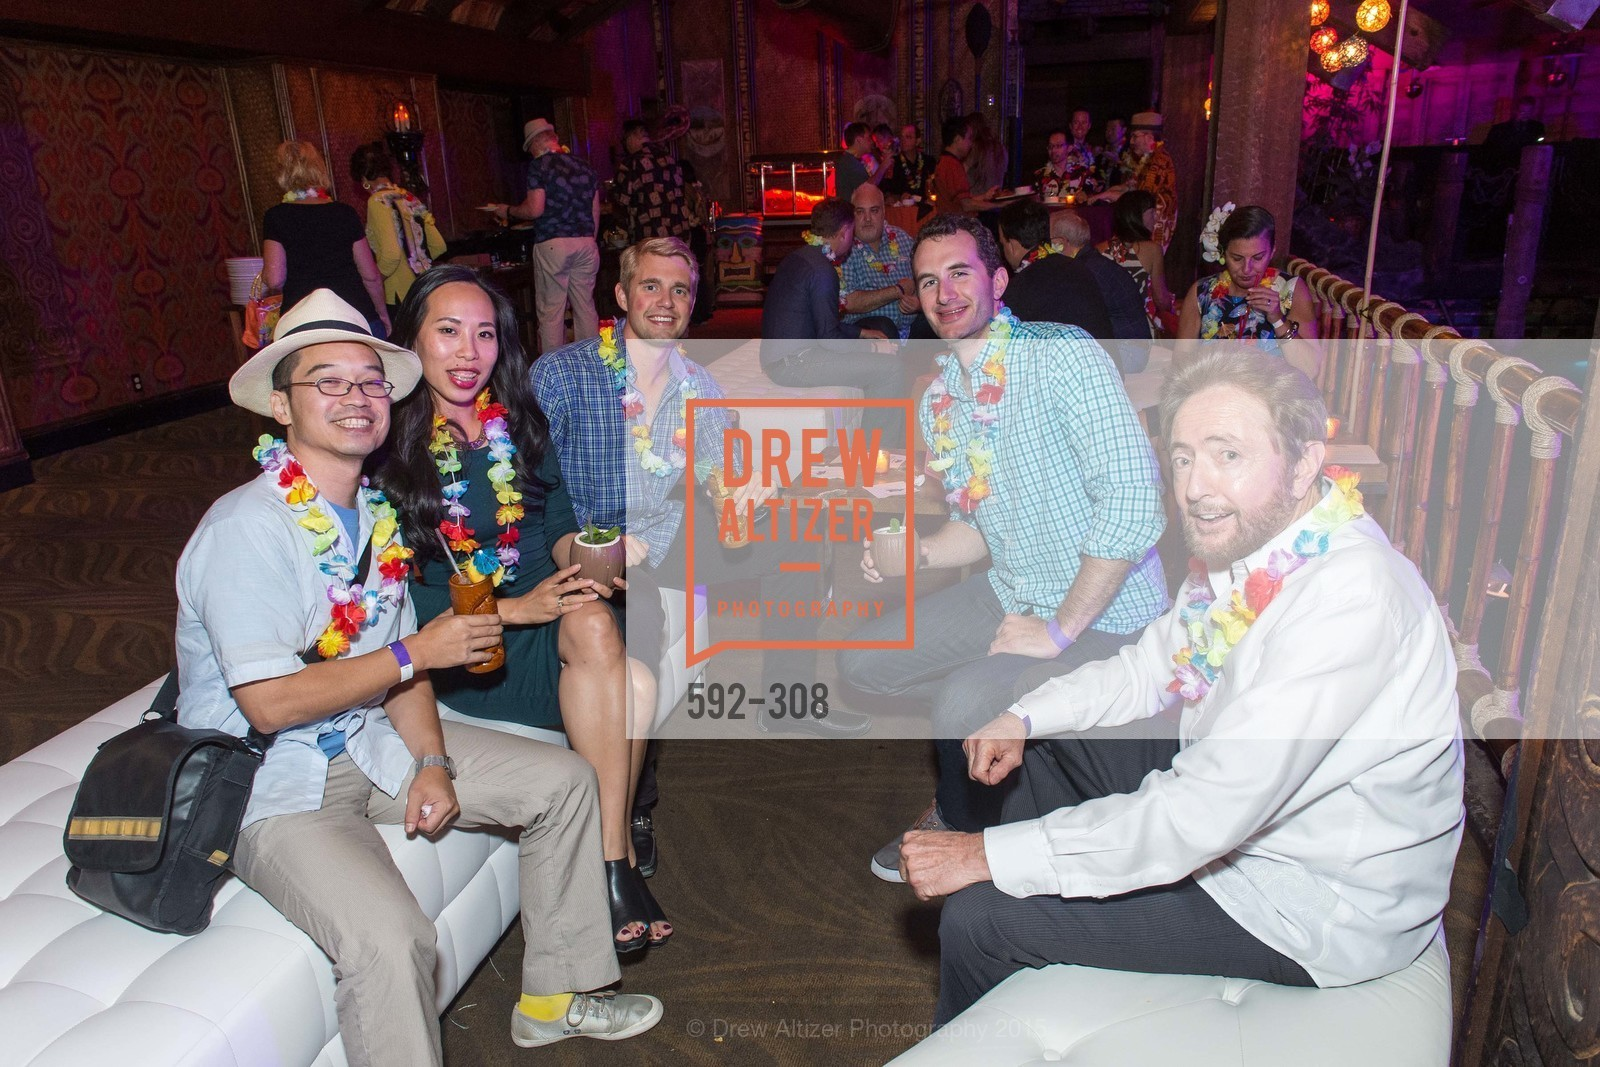 Anh Tran, Chris Hunt, Sutt Tashjian, Larry Agnew, Tonga Room & Hurricane Bar Celebrates 70 Years of Tiki Glory, Fairmont, September 23rd, 2015,Drew Altizer, Drew Altizer Photography, full-service agency, private events, San Francisco photographer, photographer california